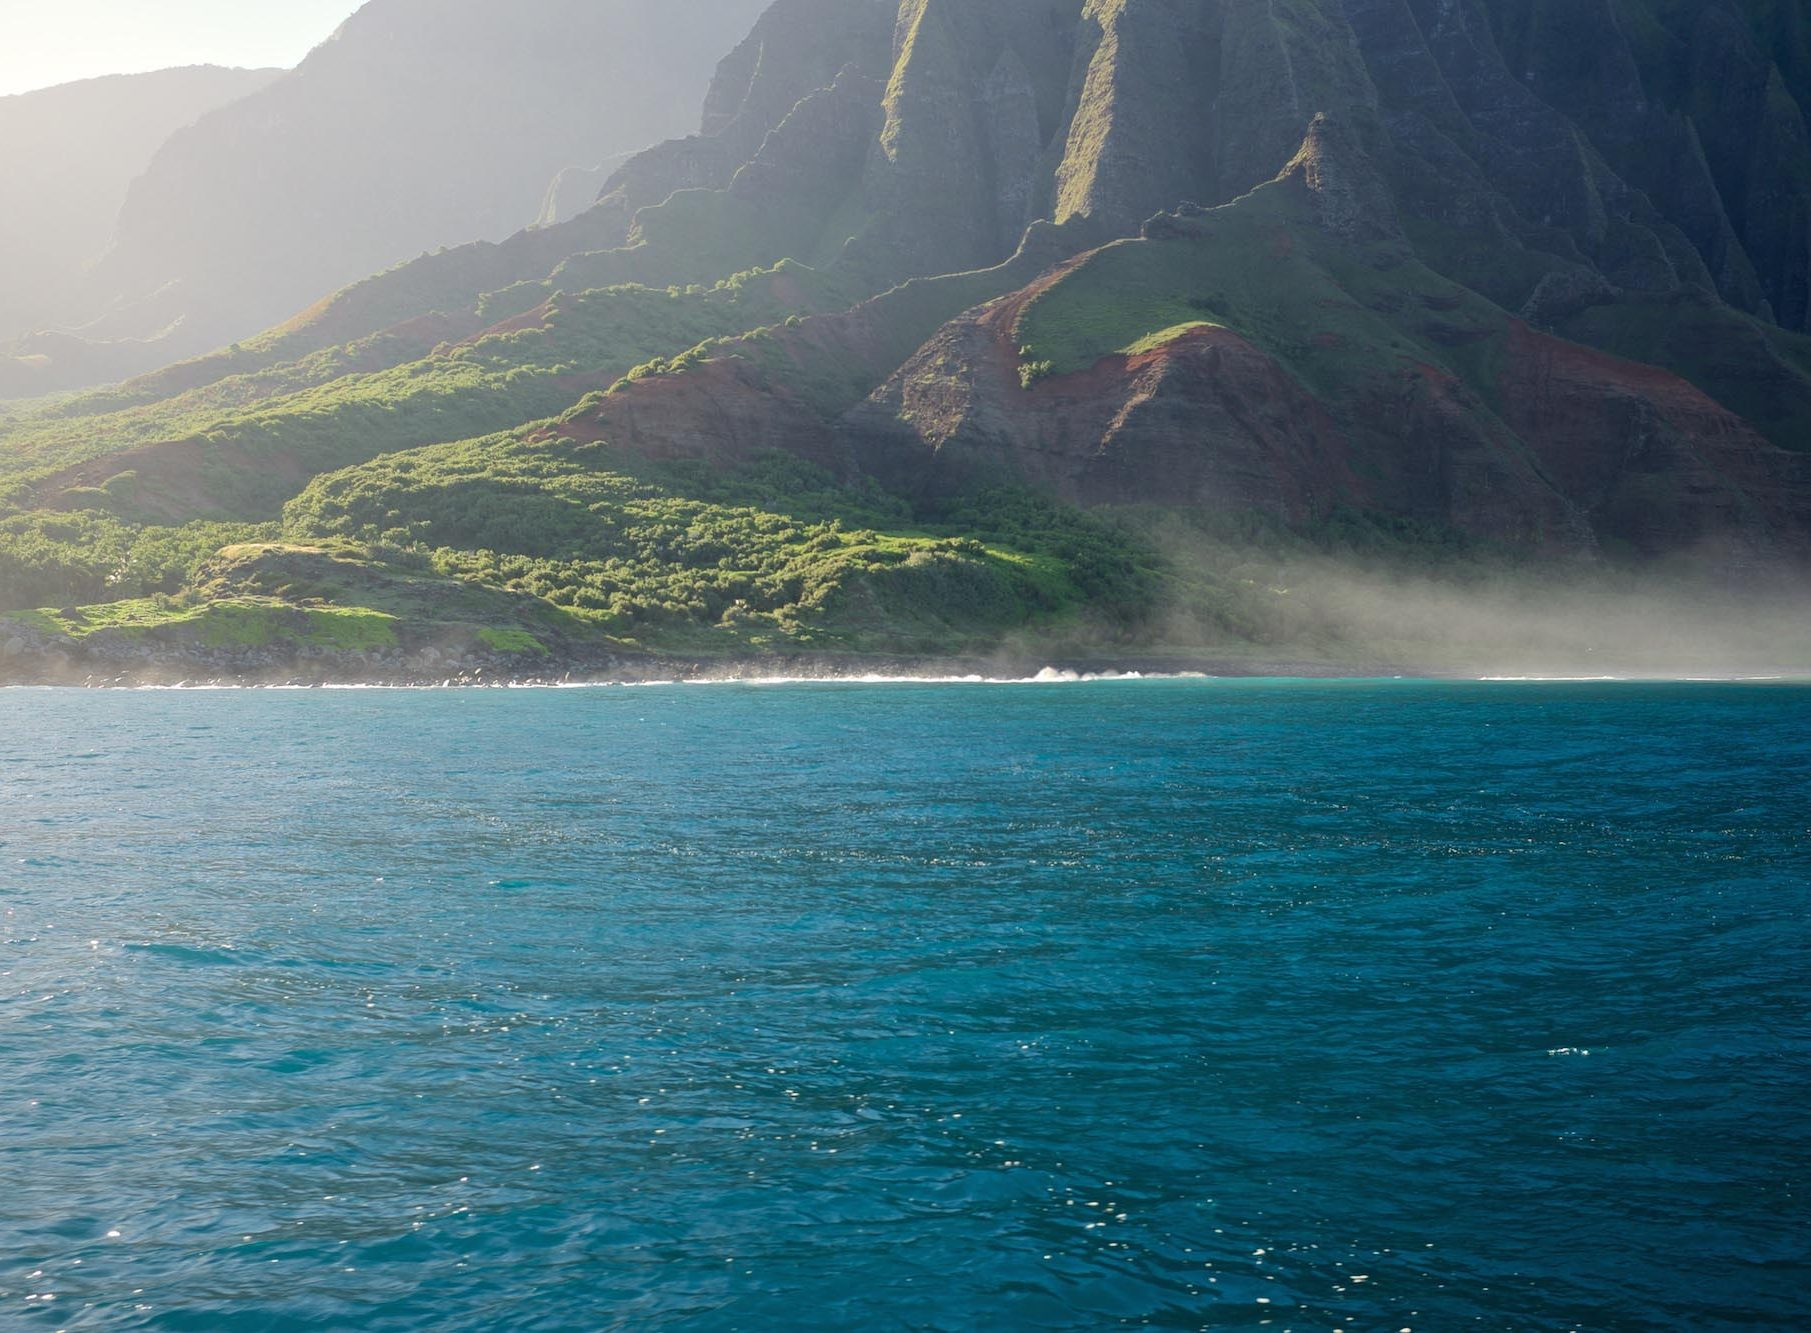 Nā Pali coast from the sea